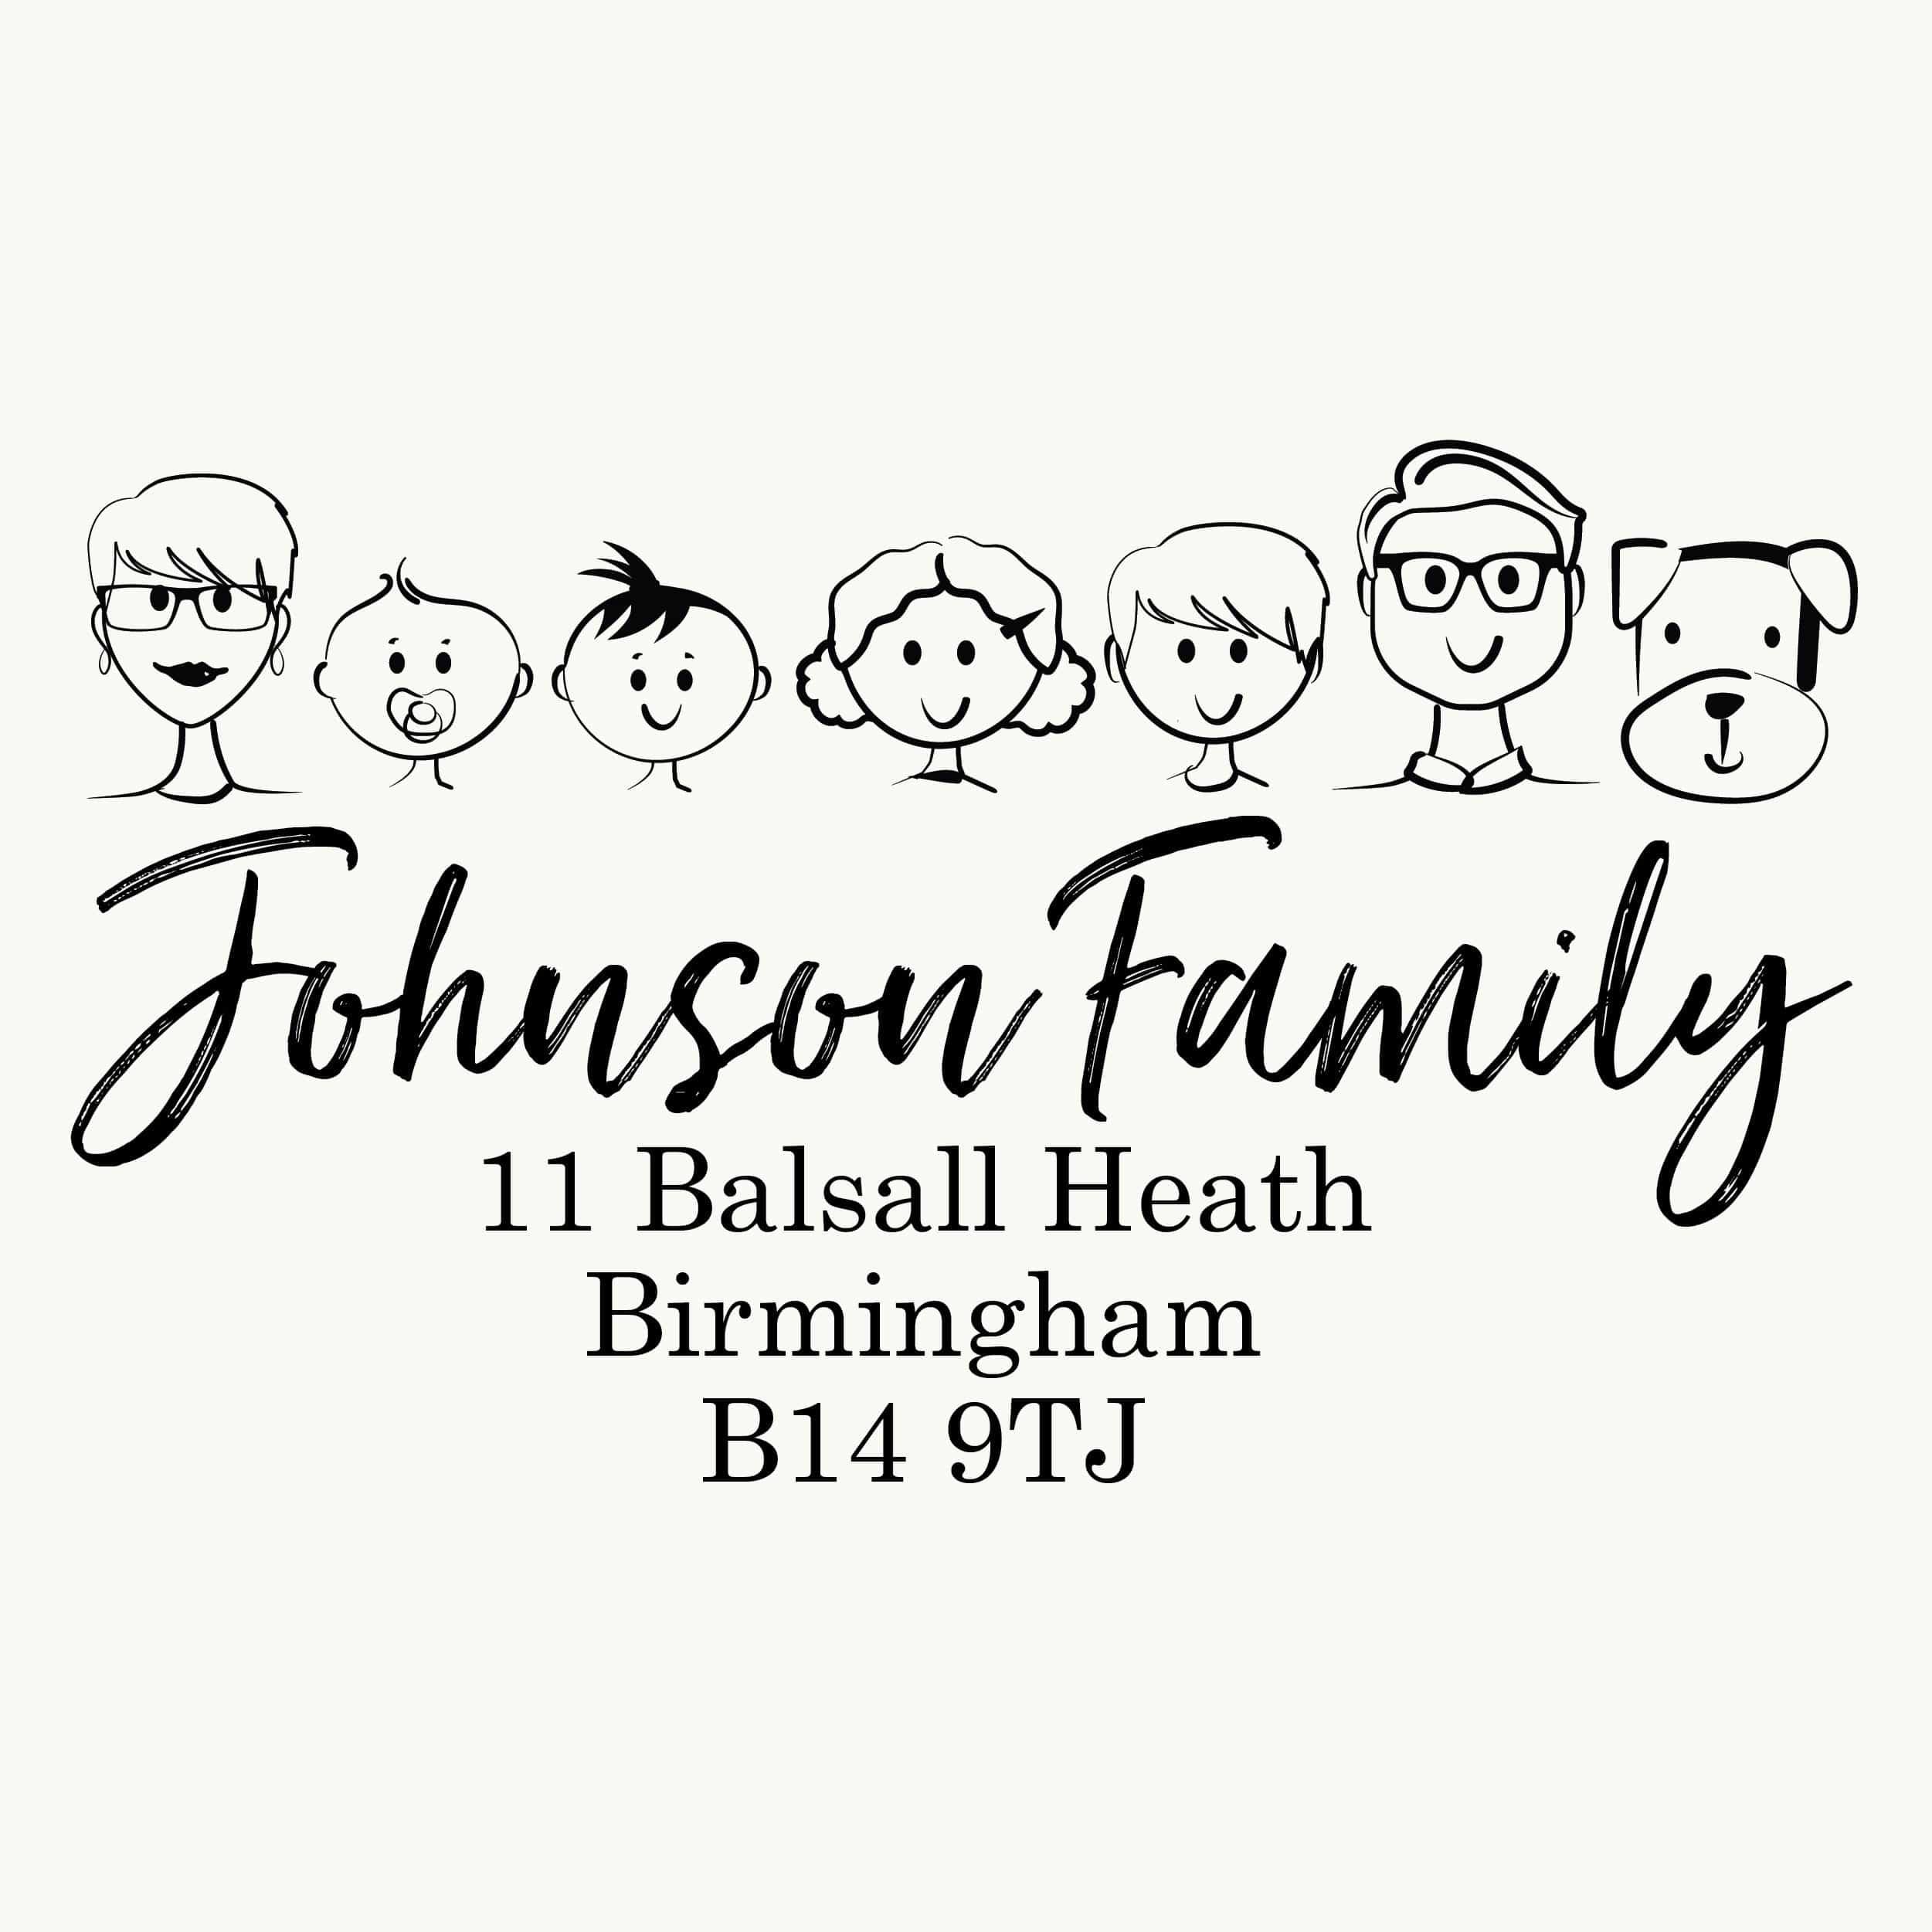 Fun Family Portrait Personalised Stamp - Large - stamptastic-uk